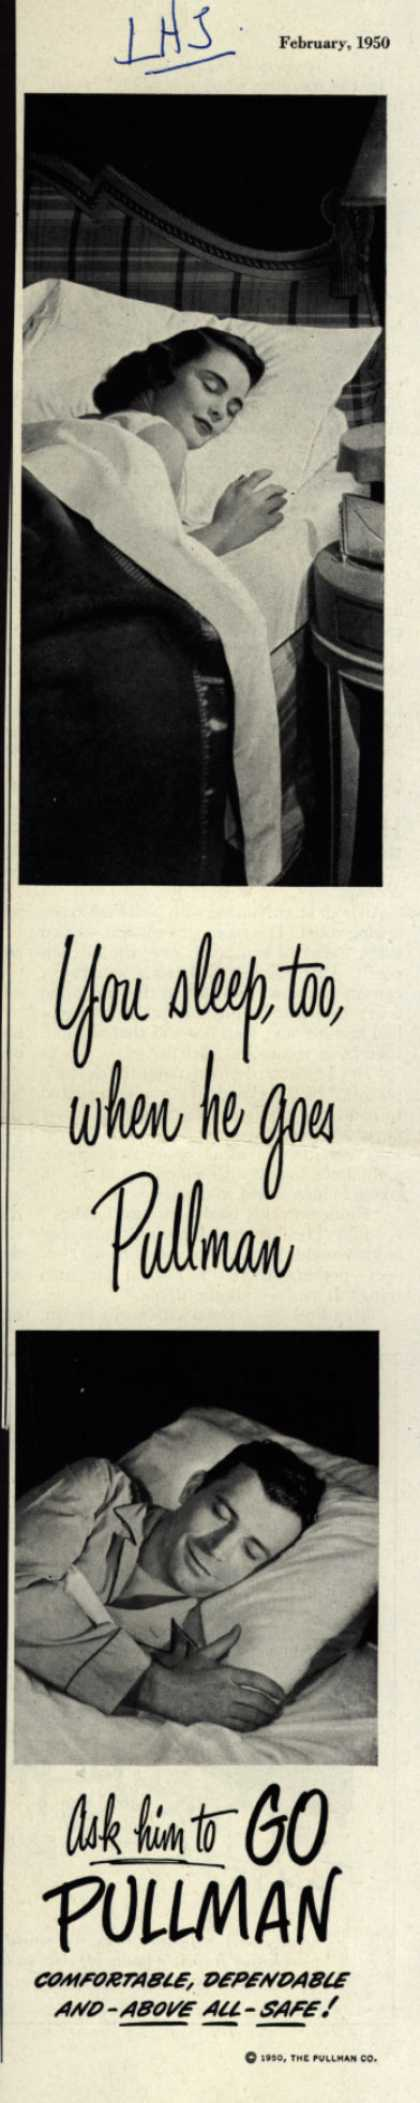 Pullman Company – You sleep, too, when he goes Pullman. Ask him to Go Pullman (1950)